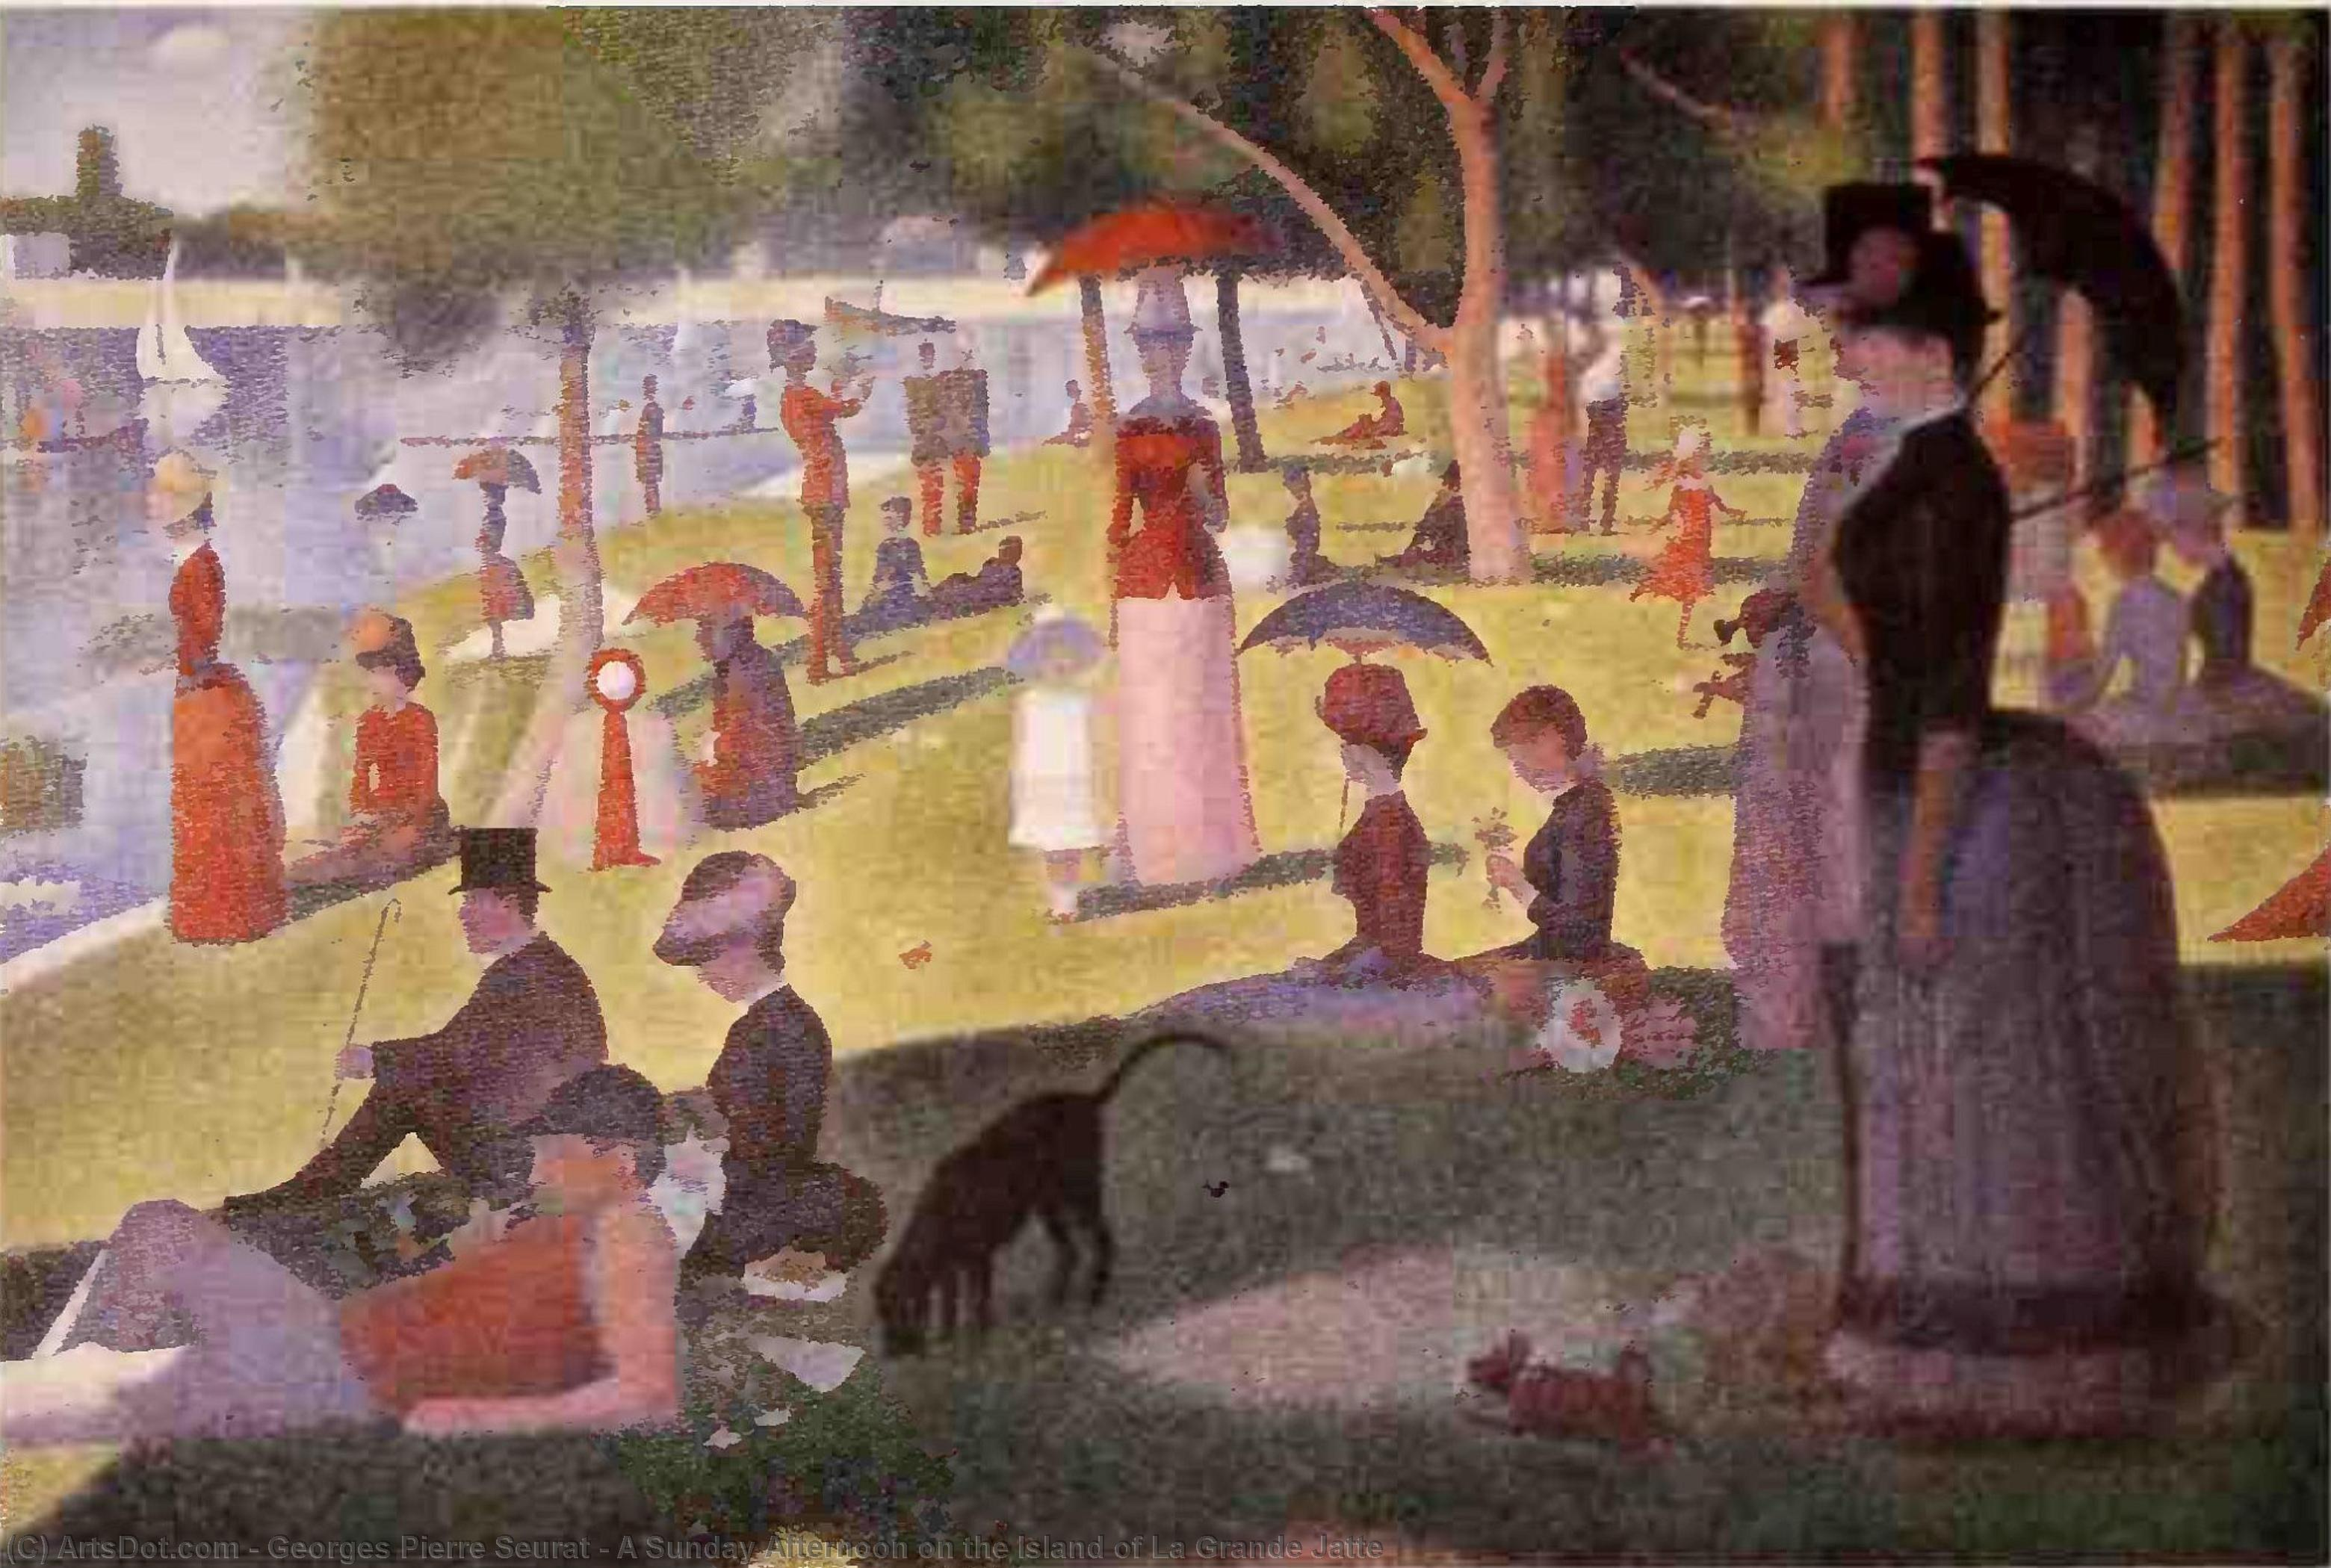 WikiOO.org - Enciclopedia of Fine Arts - Pictura, lucrări de artă Georges Pierre Seurat - A Sunday Afternoon on the Island of La Grande Jatte